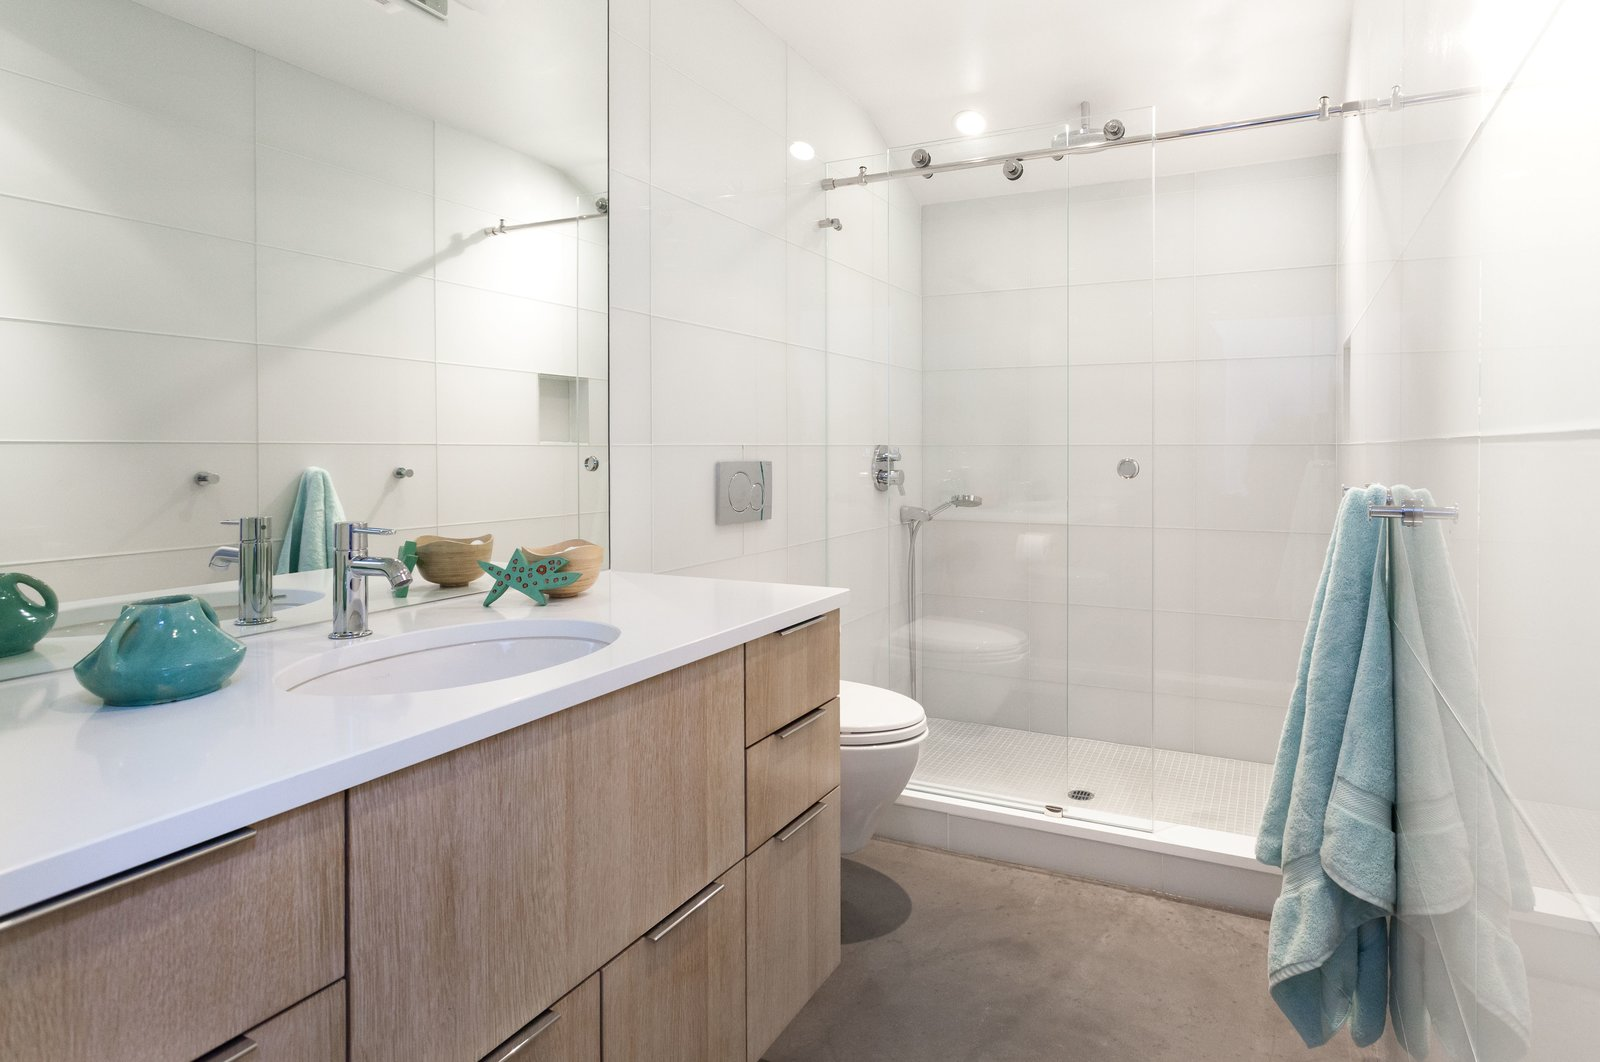 Photo 7 of 10 in Bright Colors and Sleek White Oak Fill This Playful ...